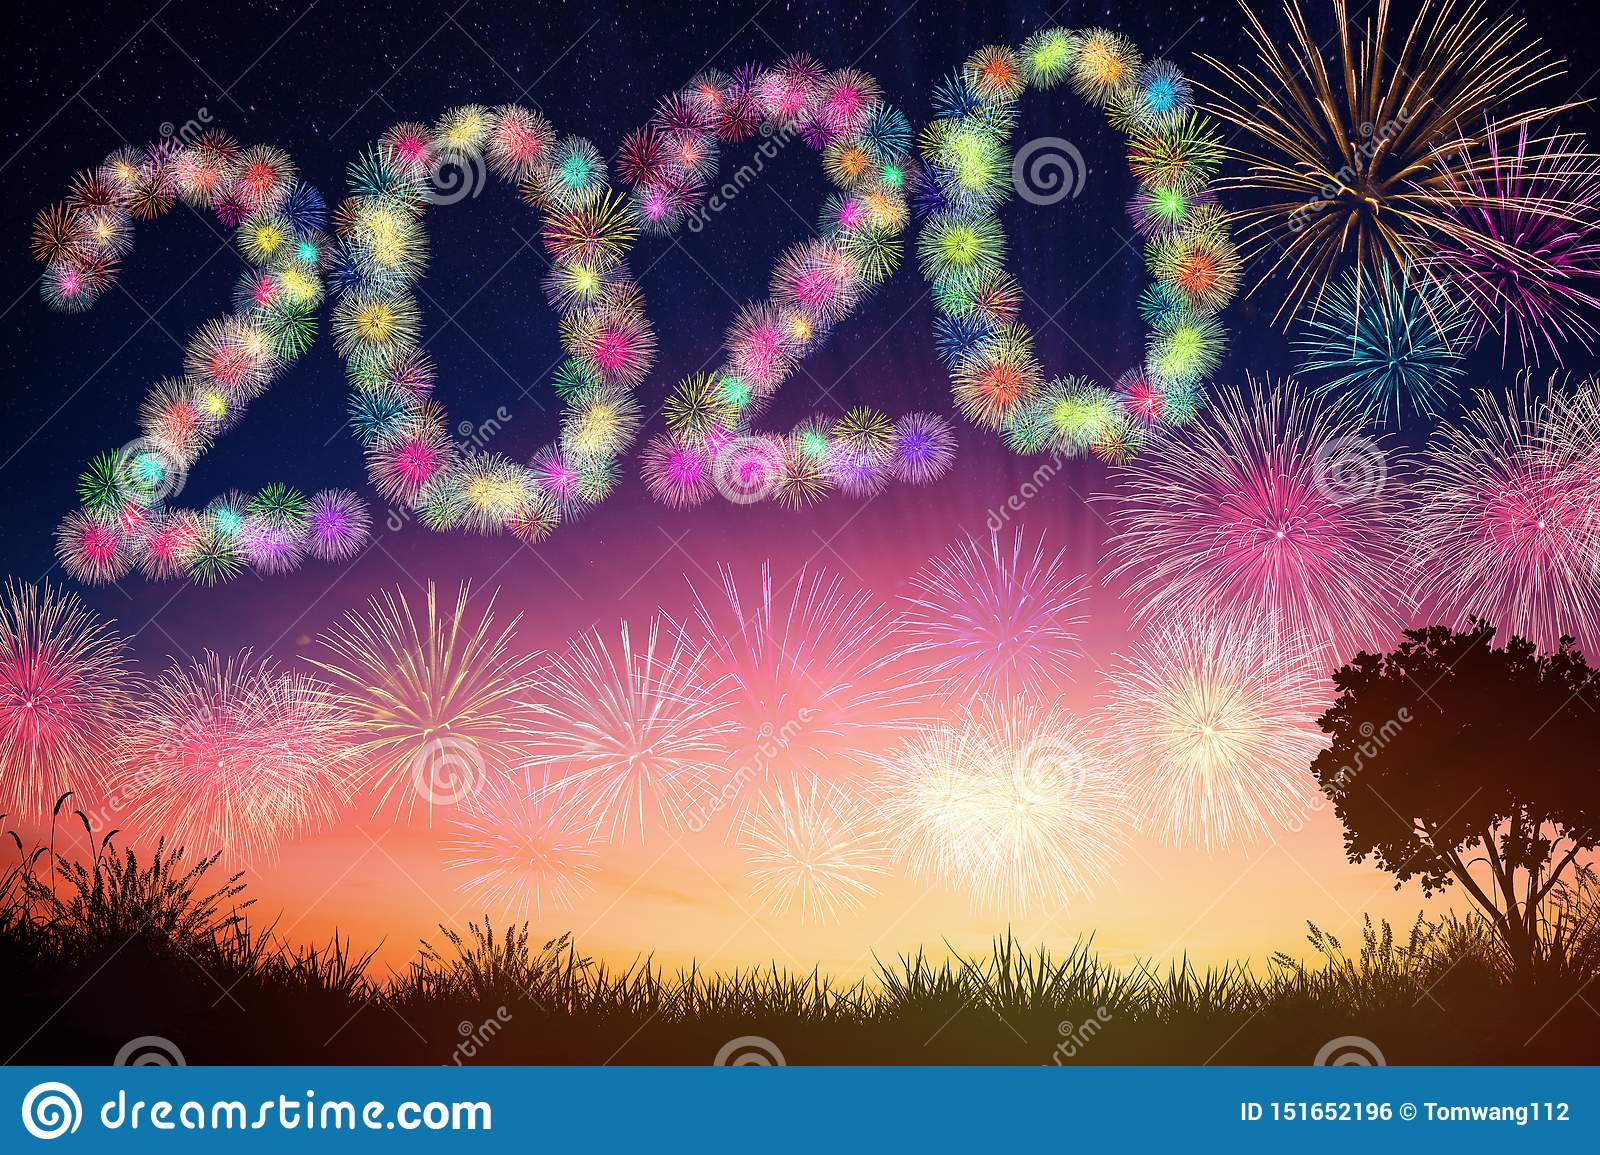 new year 2020 concepts with fireworks background